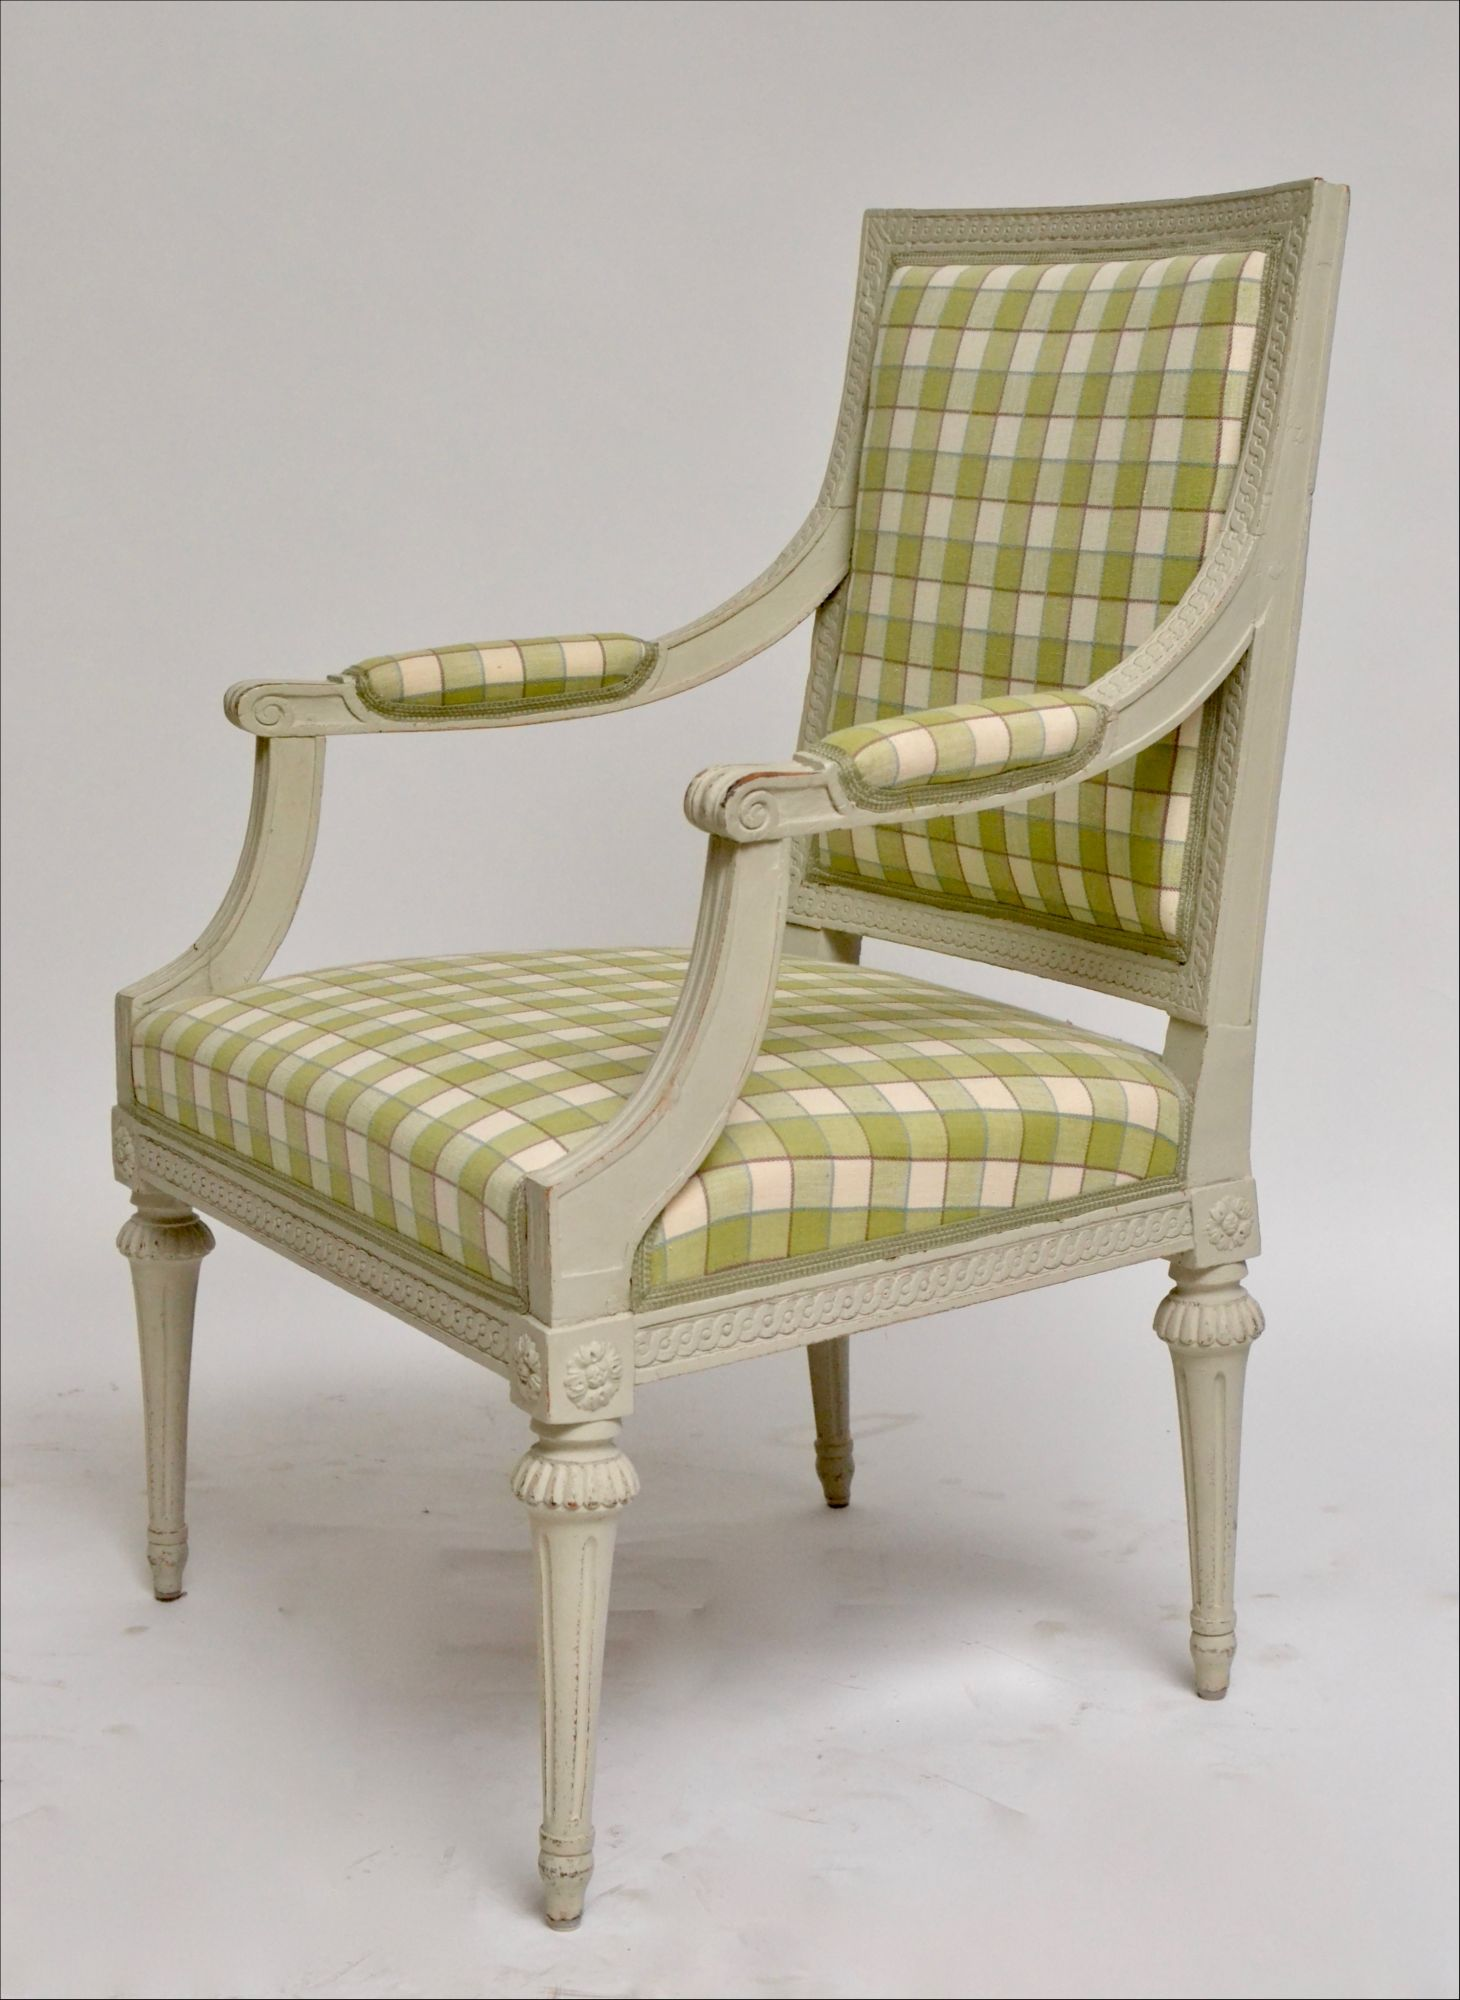 grey painted chairs hanging chair brisbane pair of gustavian arm